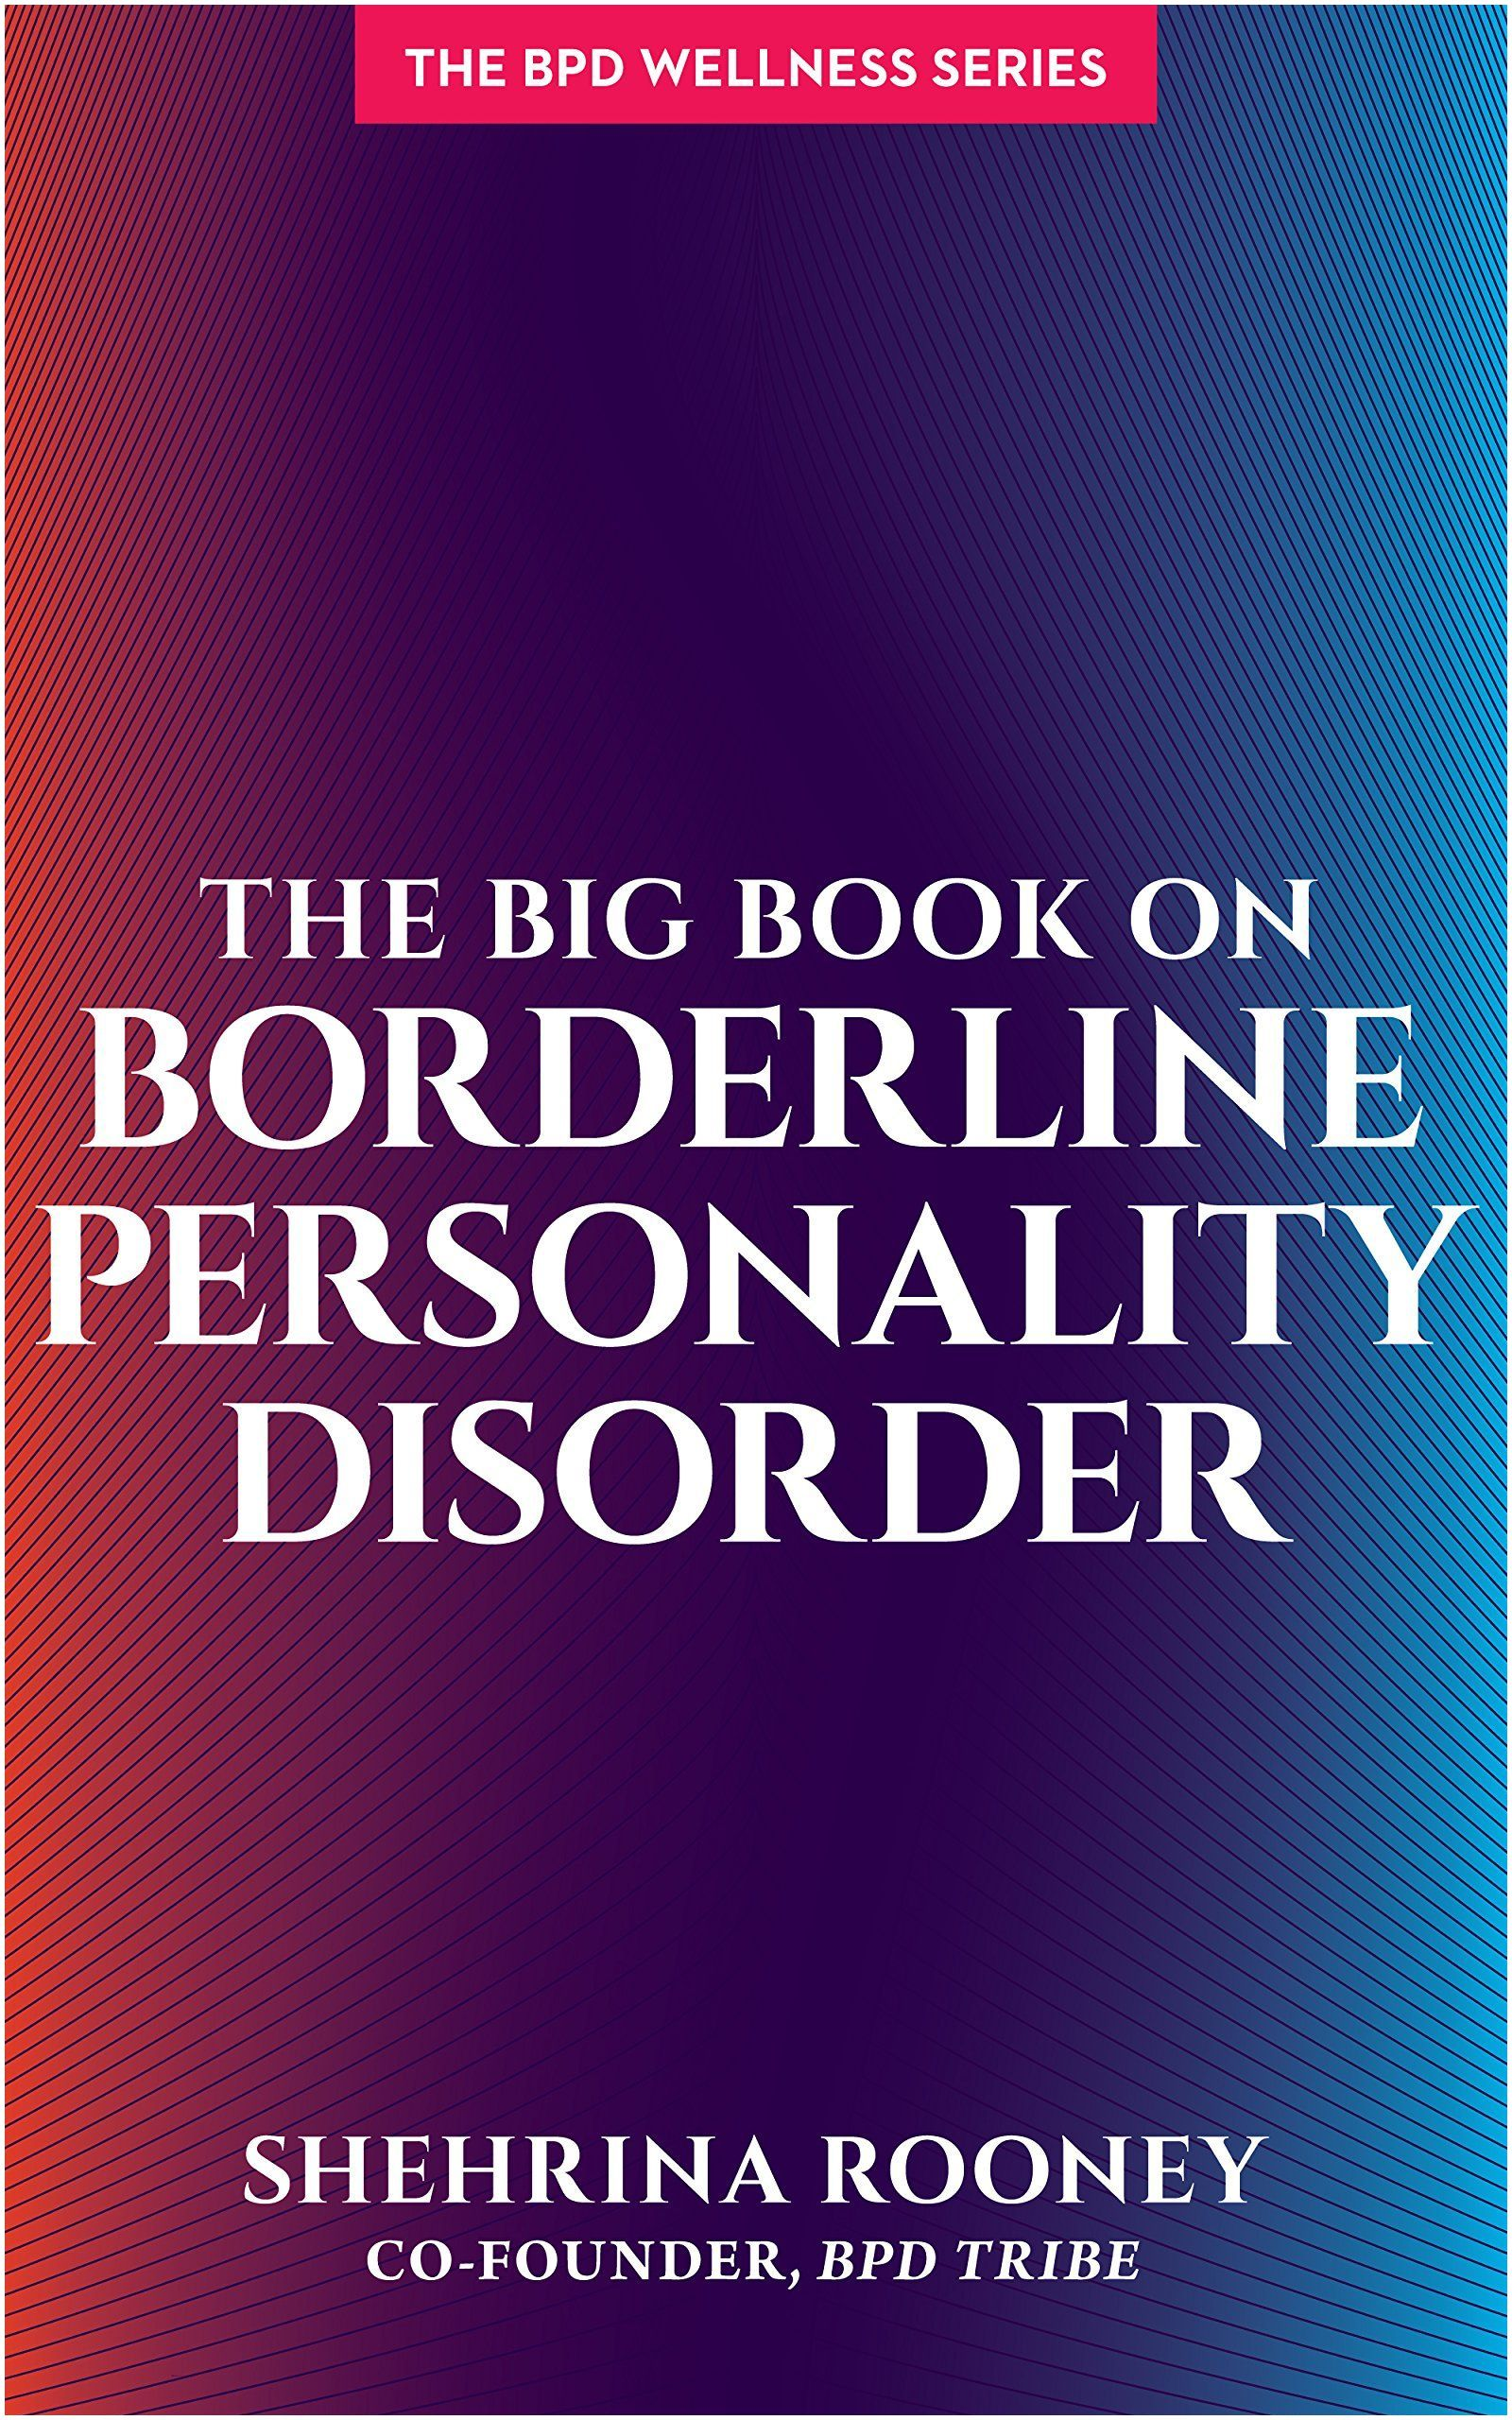 January 2019 Book Releases the Big Book On Borderline Personality Disorder Bpd Wellness